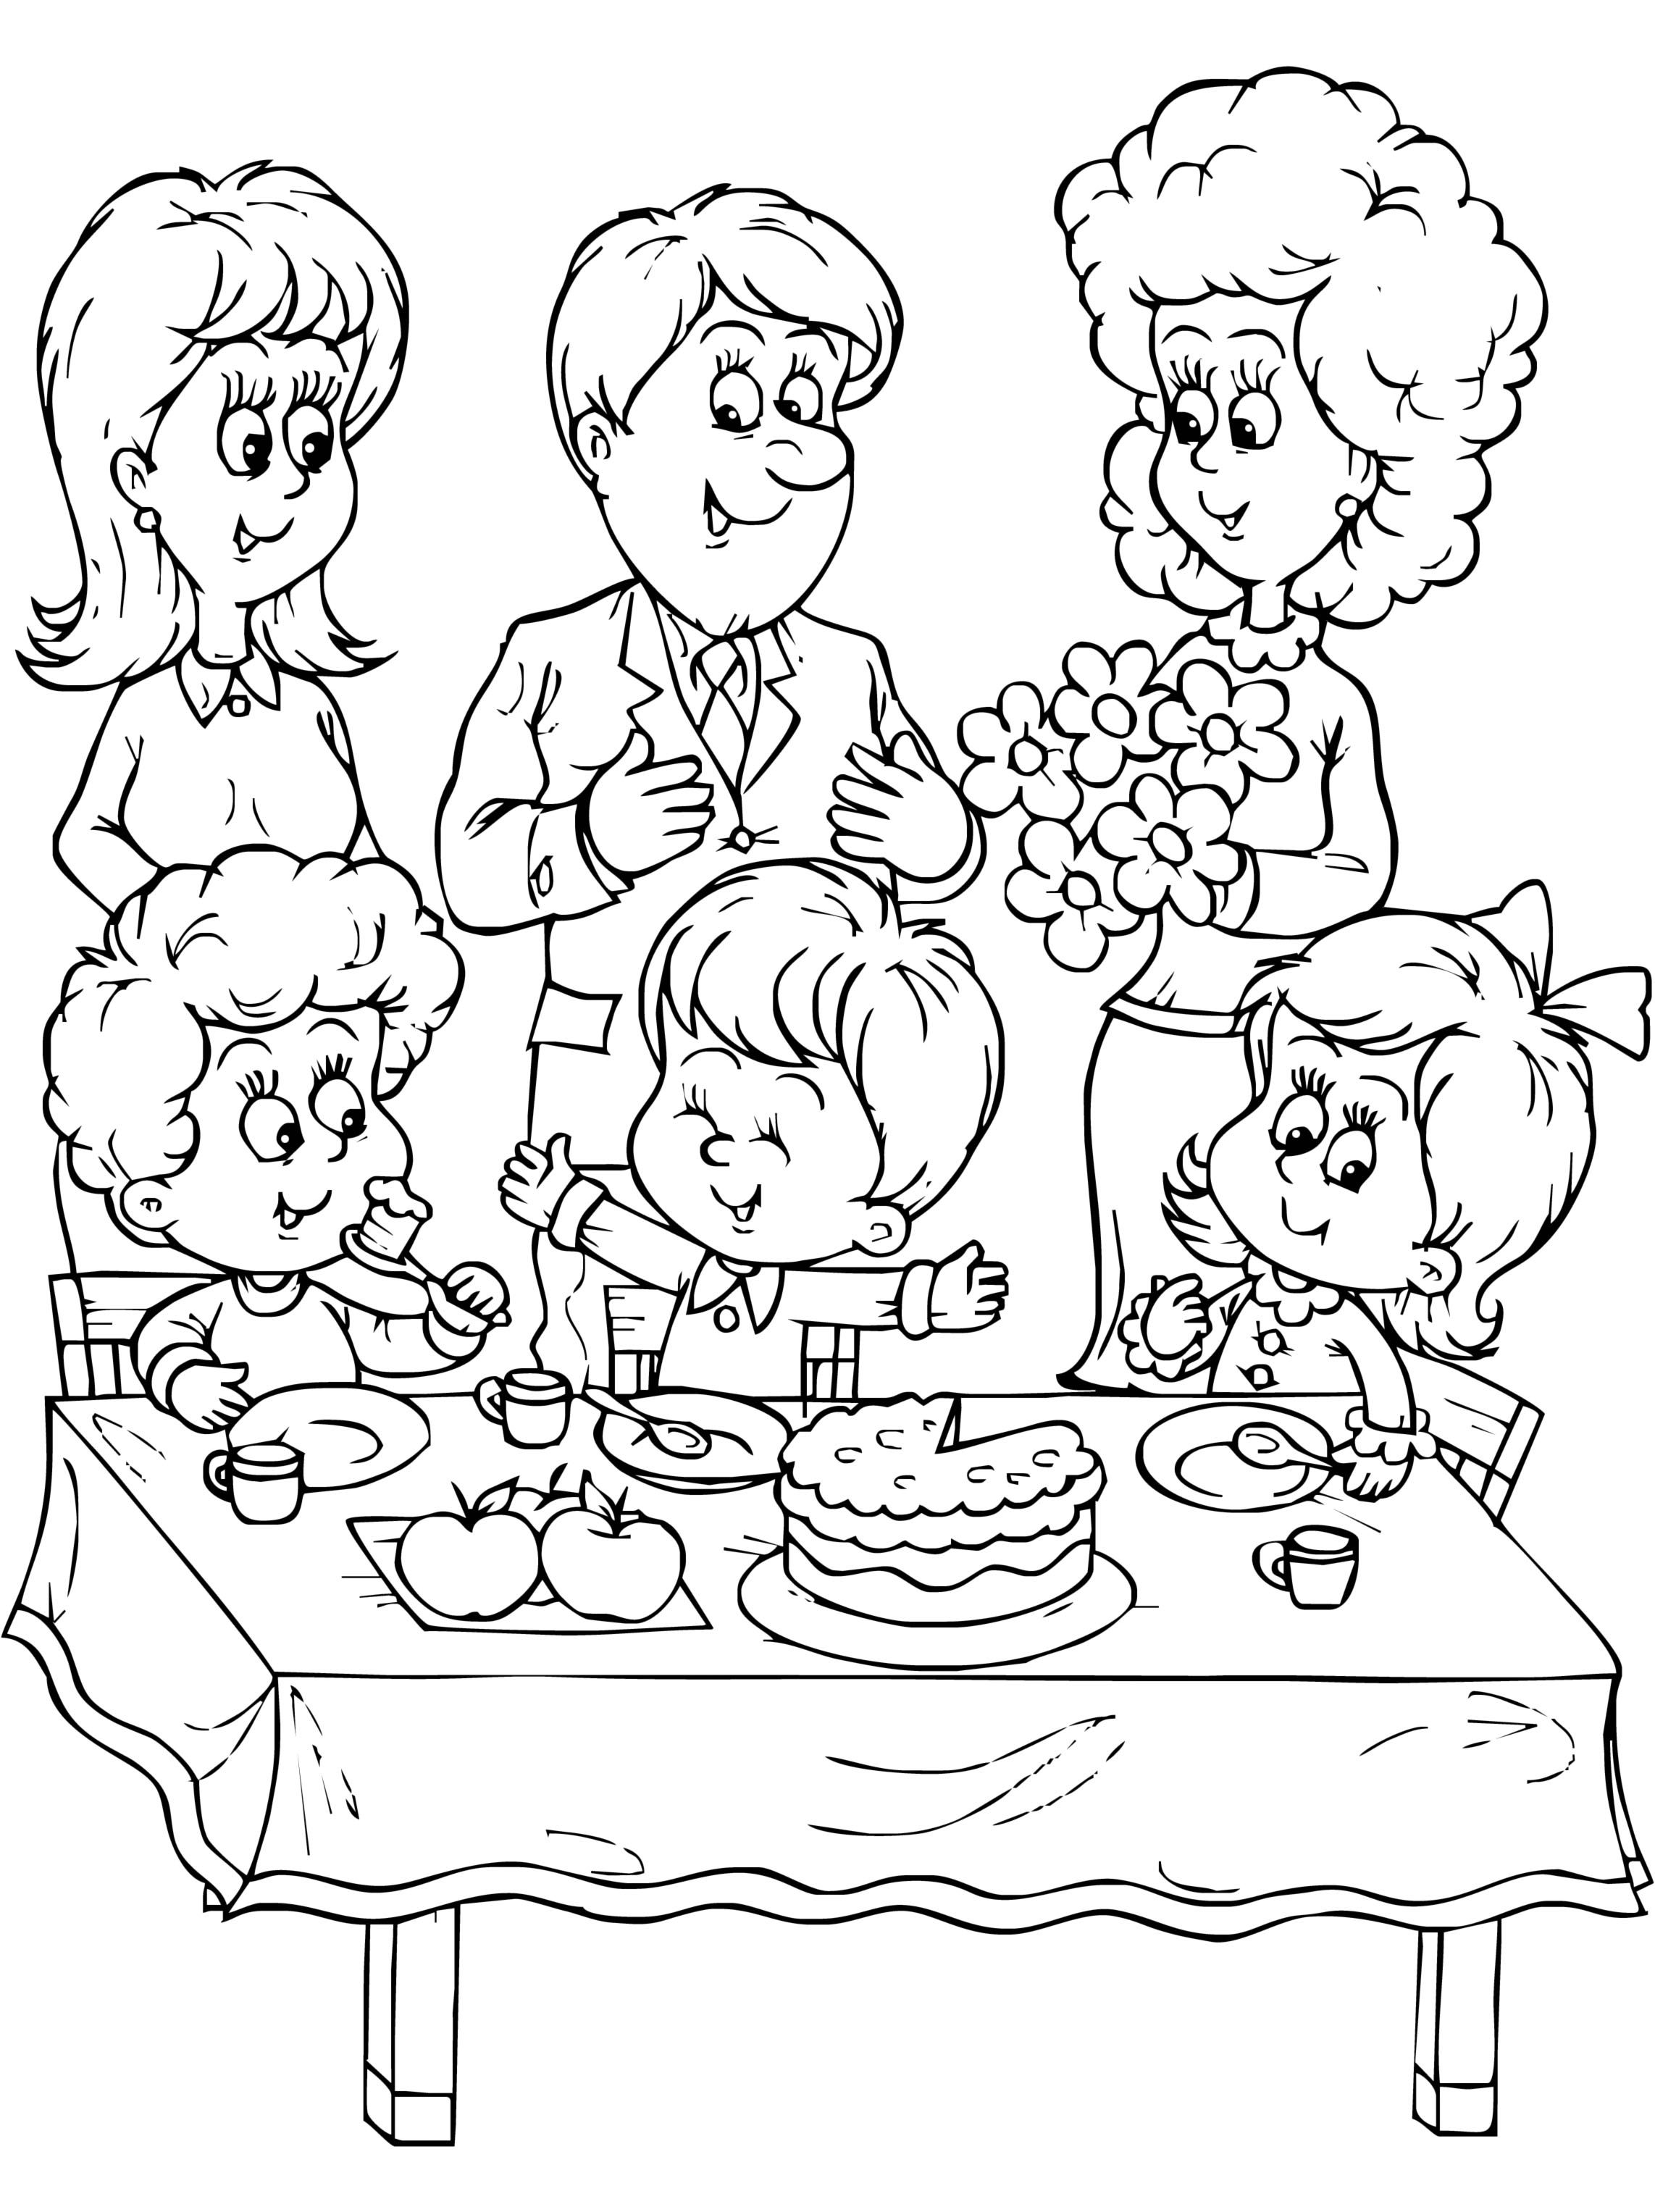 coloring family picture how to draw a beautiful family coloring page coloring sky family picture coloring